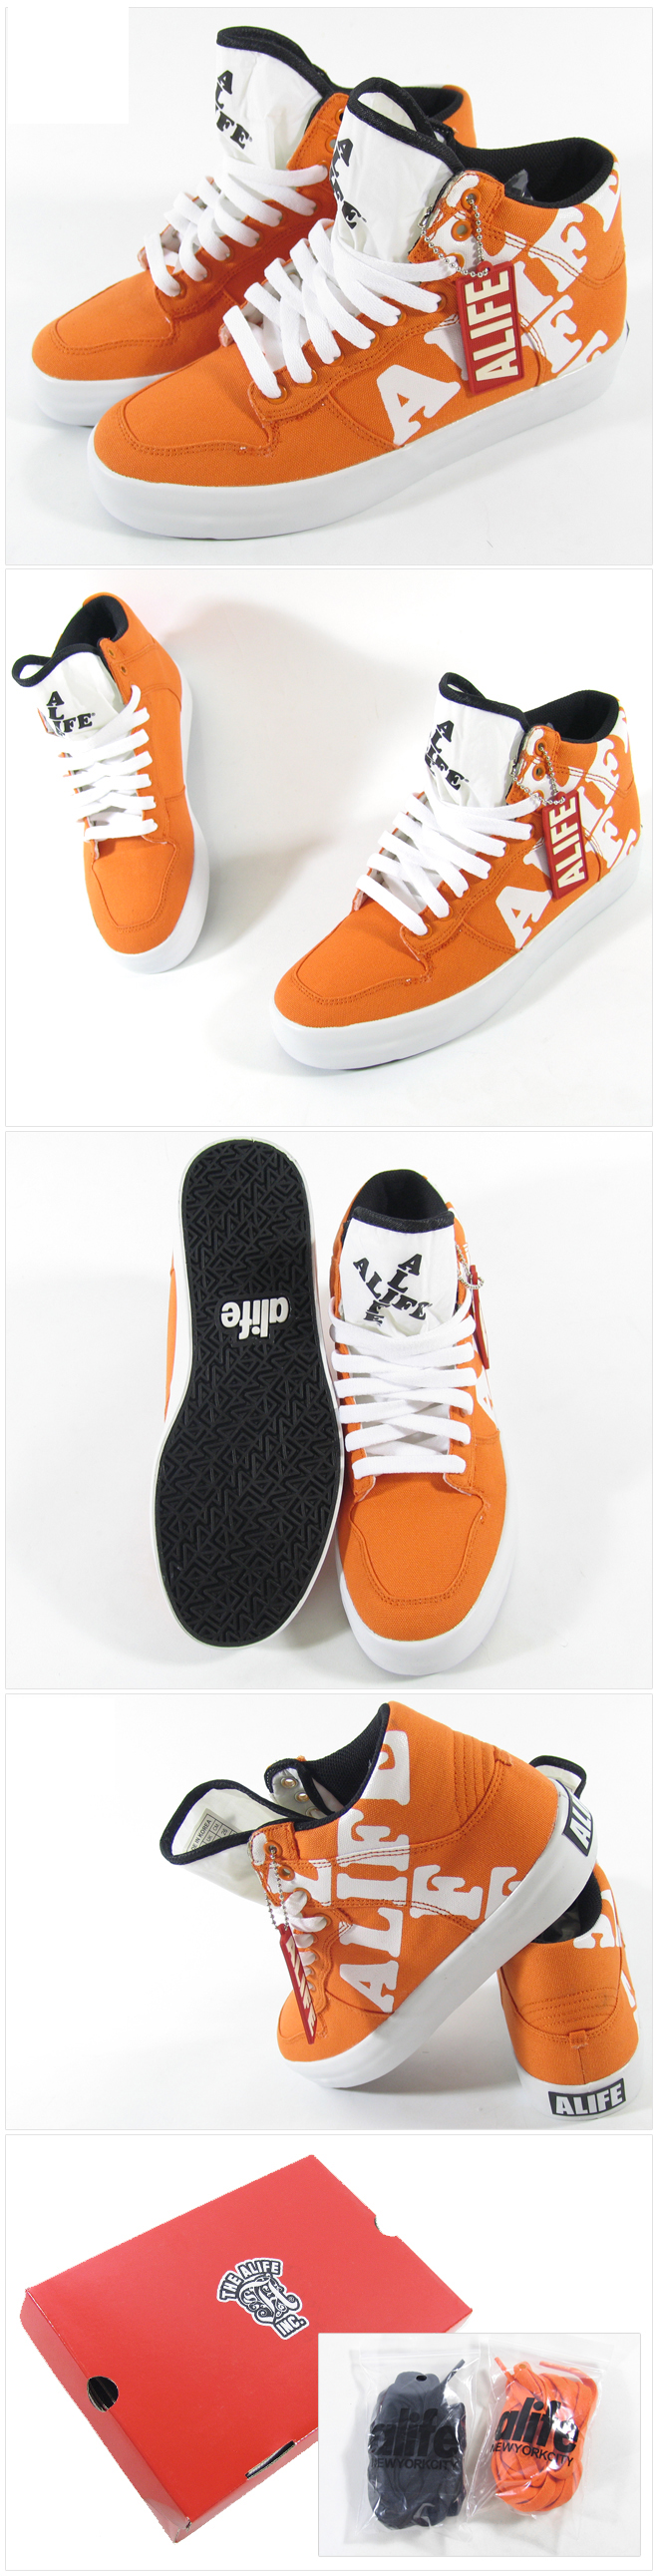 ALIFE EVERYBODY HIGH CROSS [3]